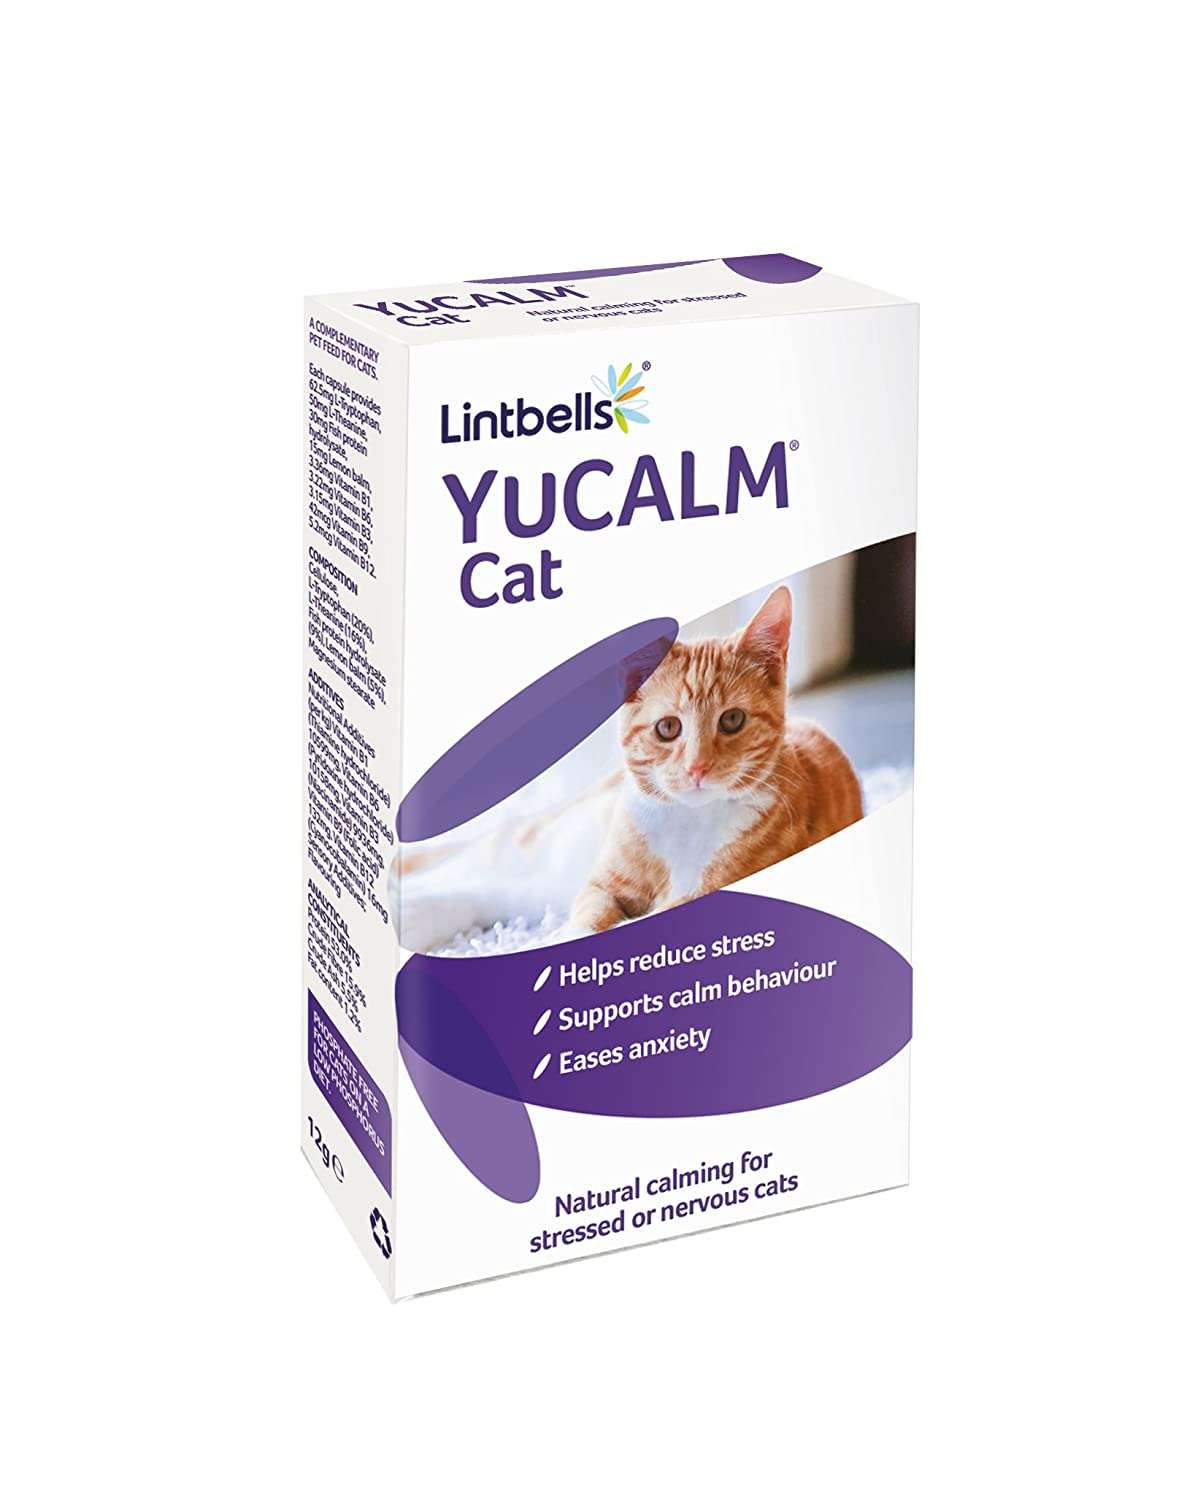 Lintbells YuCALM Calming Capsules for Cats, Pack of 30: Amazon.co.uk ...